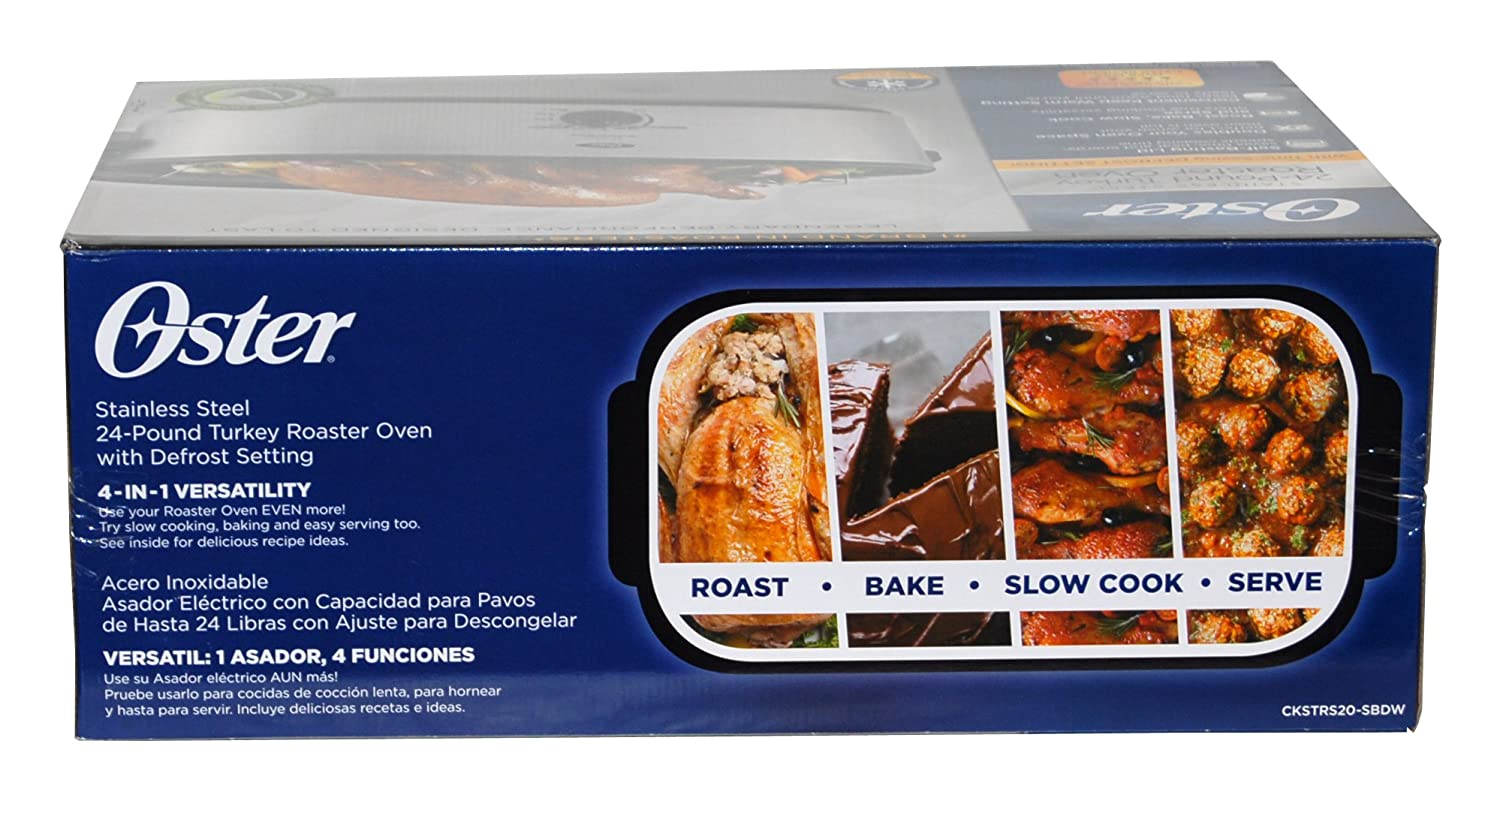 1 Brand in Roasters – Oster Stainless Steel 24-Pound Turkey Roaster Oven 20 Quarts